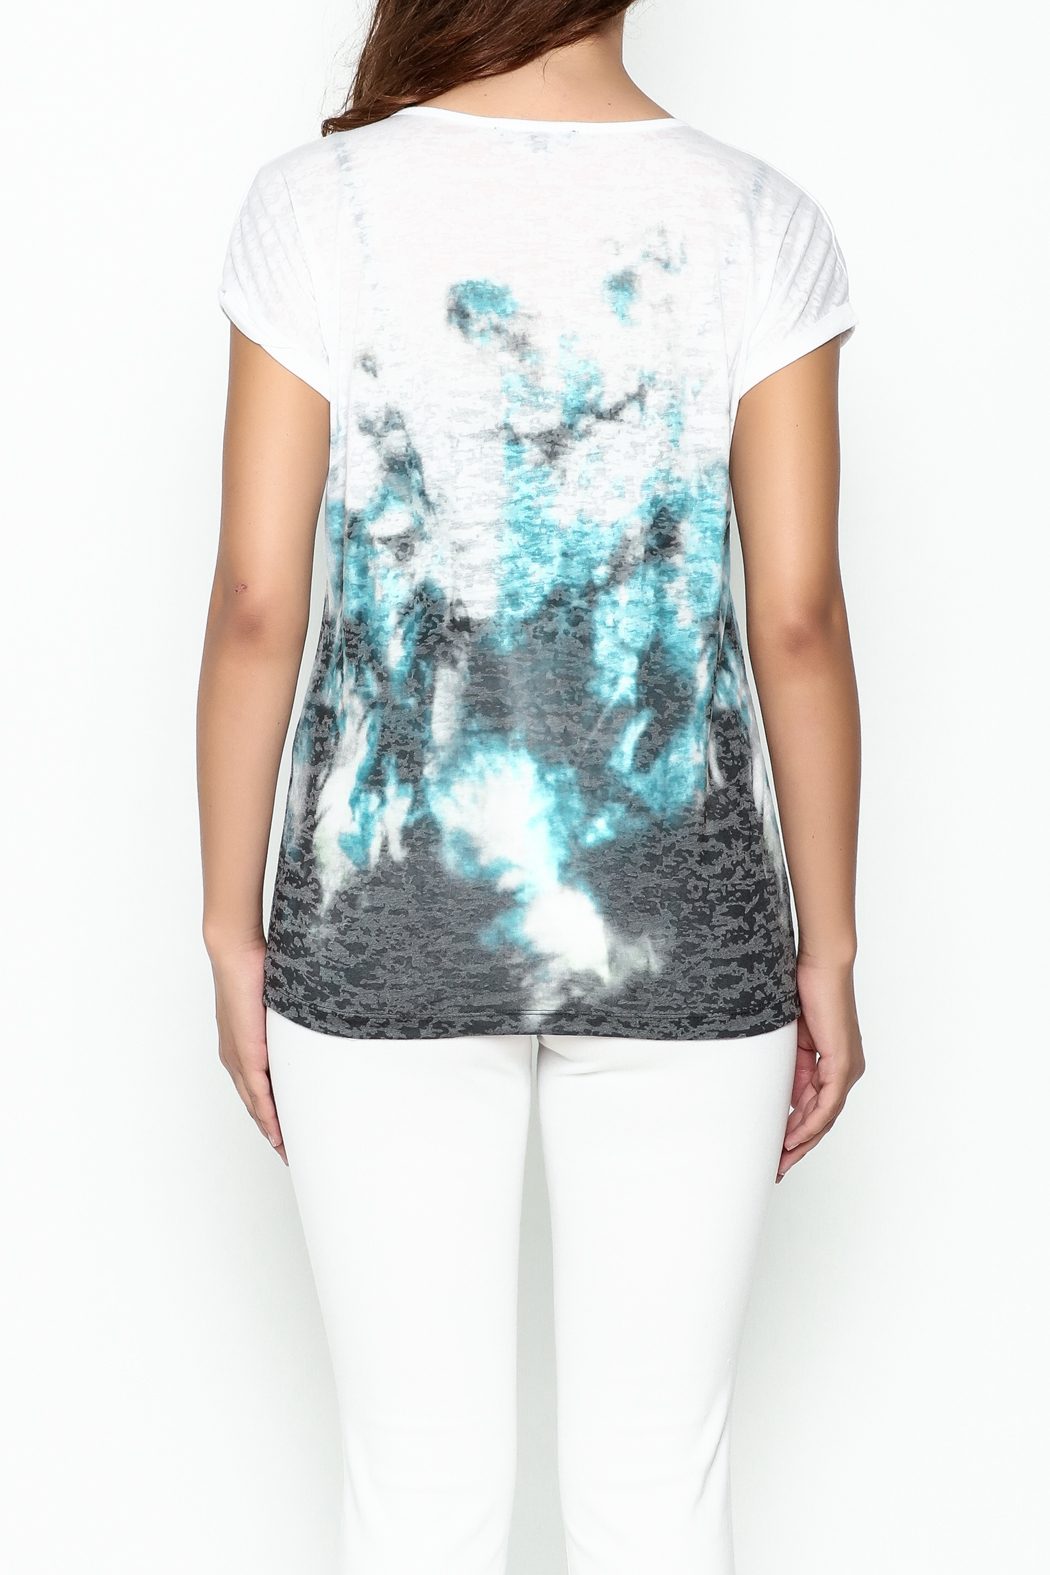 Yest Burnout Print  Tee - Back Cropped Image